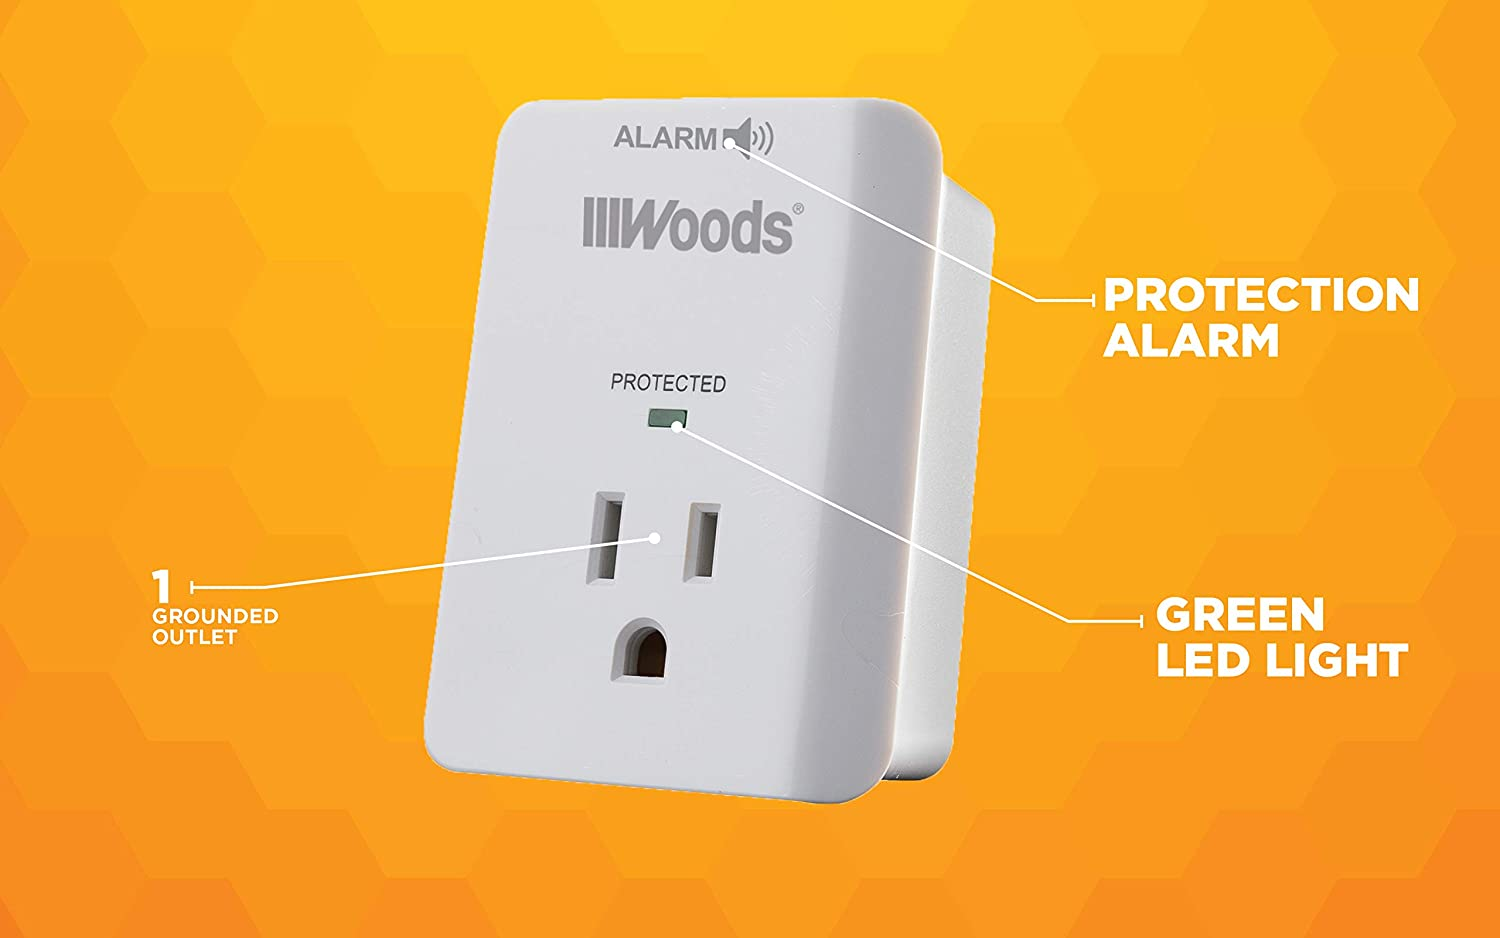 WOODS WIRE SOUTHWIRE 41008 Surge Protector One 3-prong Power Outlet LED Indicator Light and Alarm 1080J White